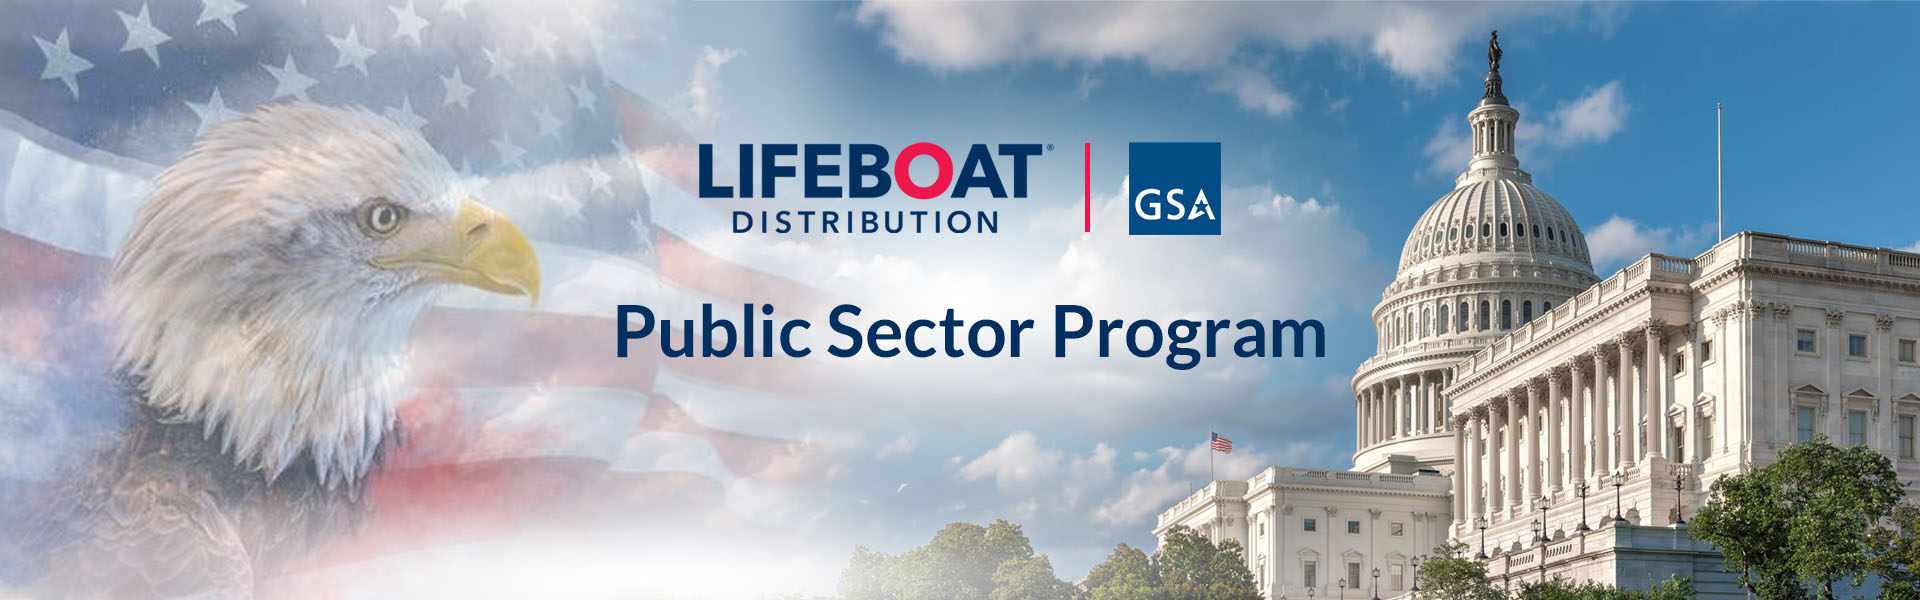 Lifeboat Public Sector Banner